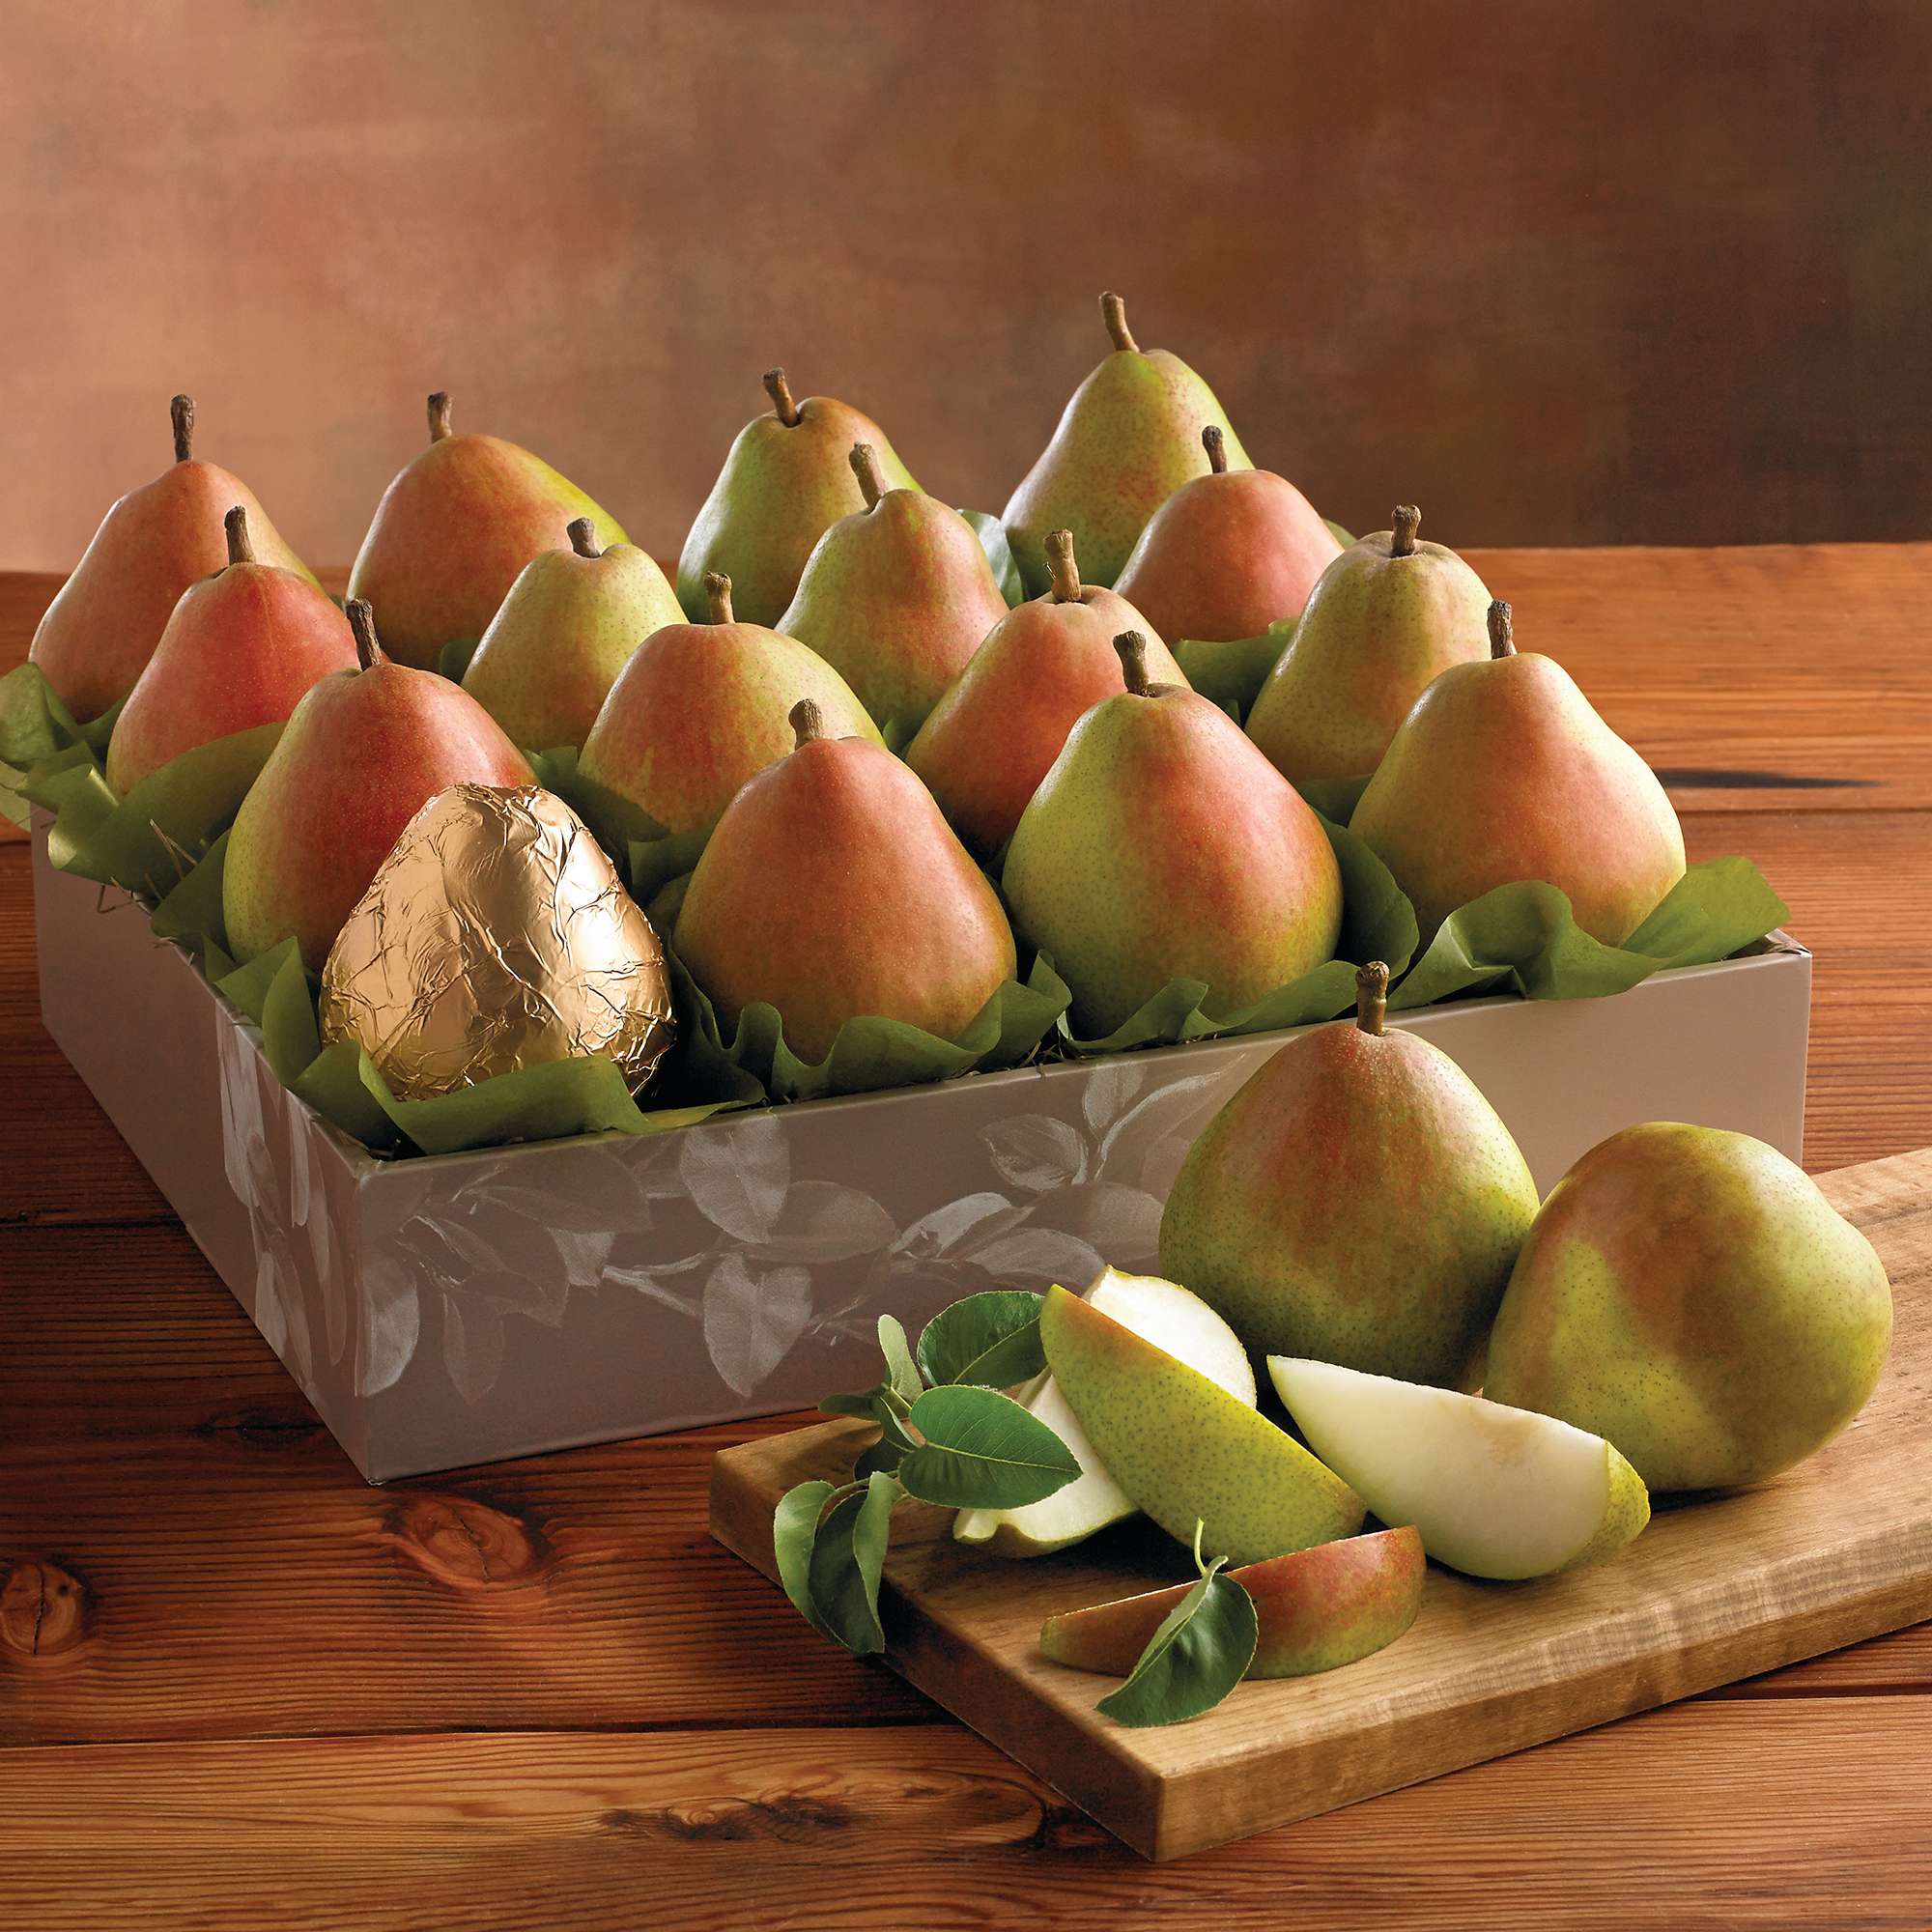 Celebrate the accomplishments of a friend or loved one with a spectacular gift of nature's finest fruit. Sweet and juicy Royal Verano™ Pears are nestled together with one wrapped in .